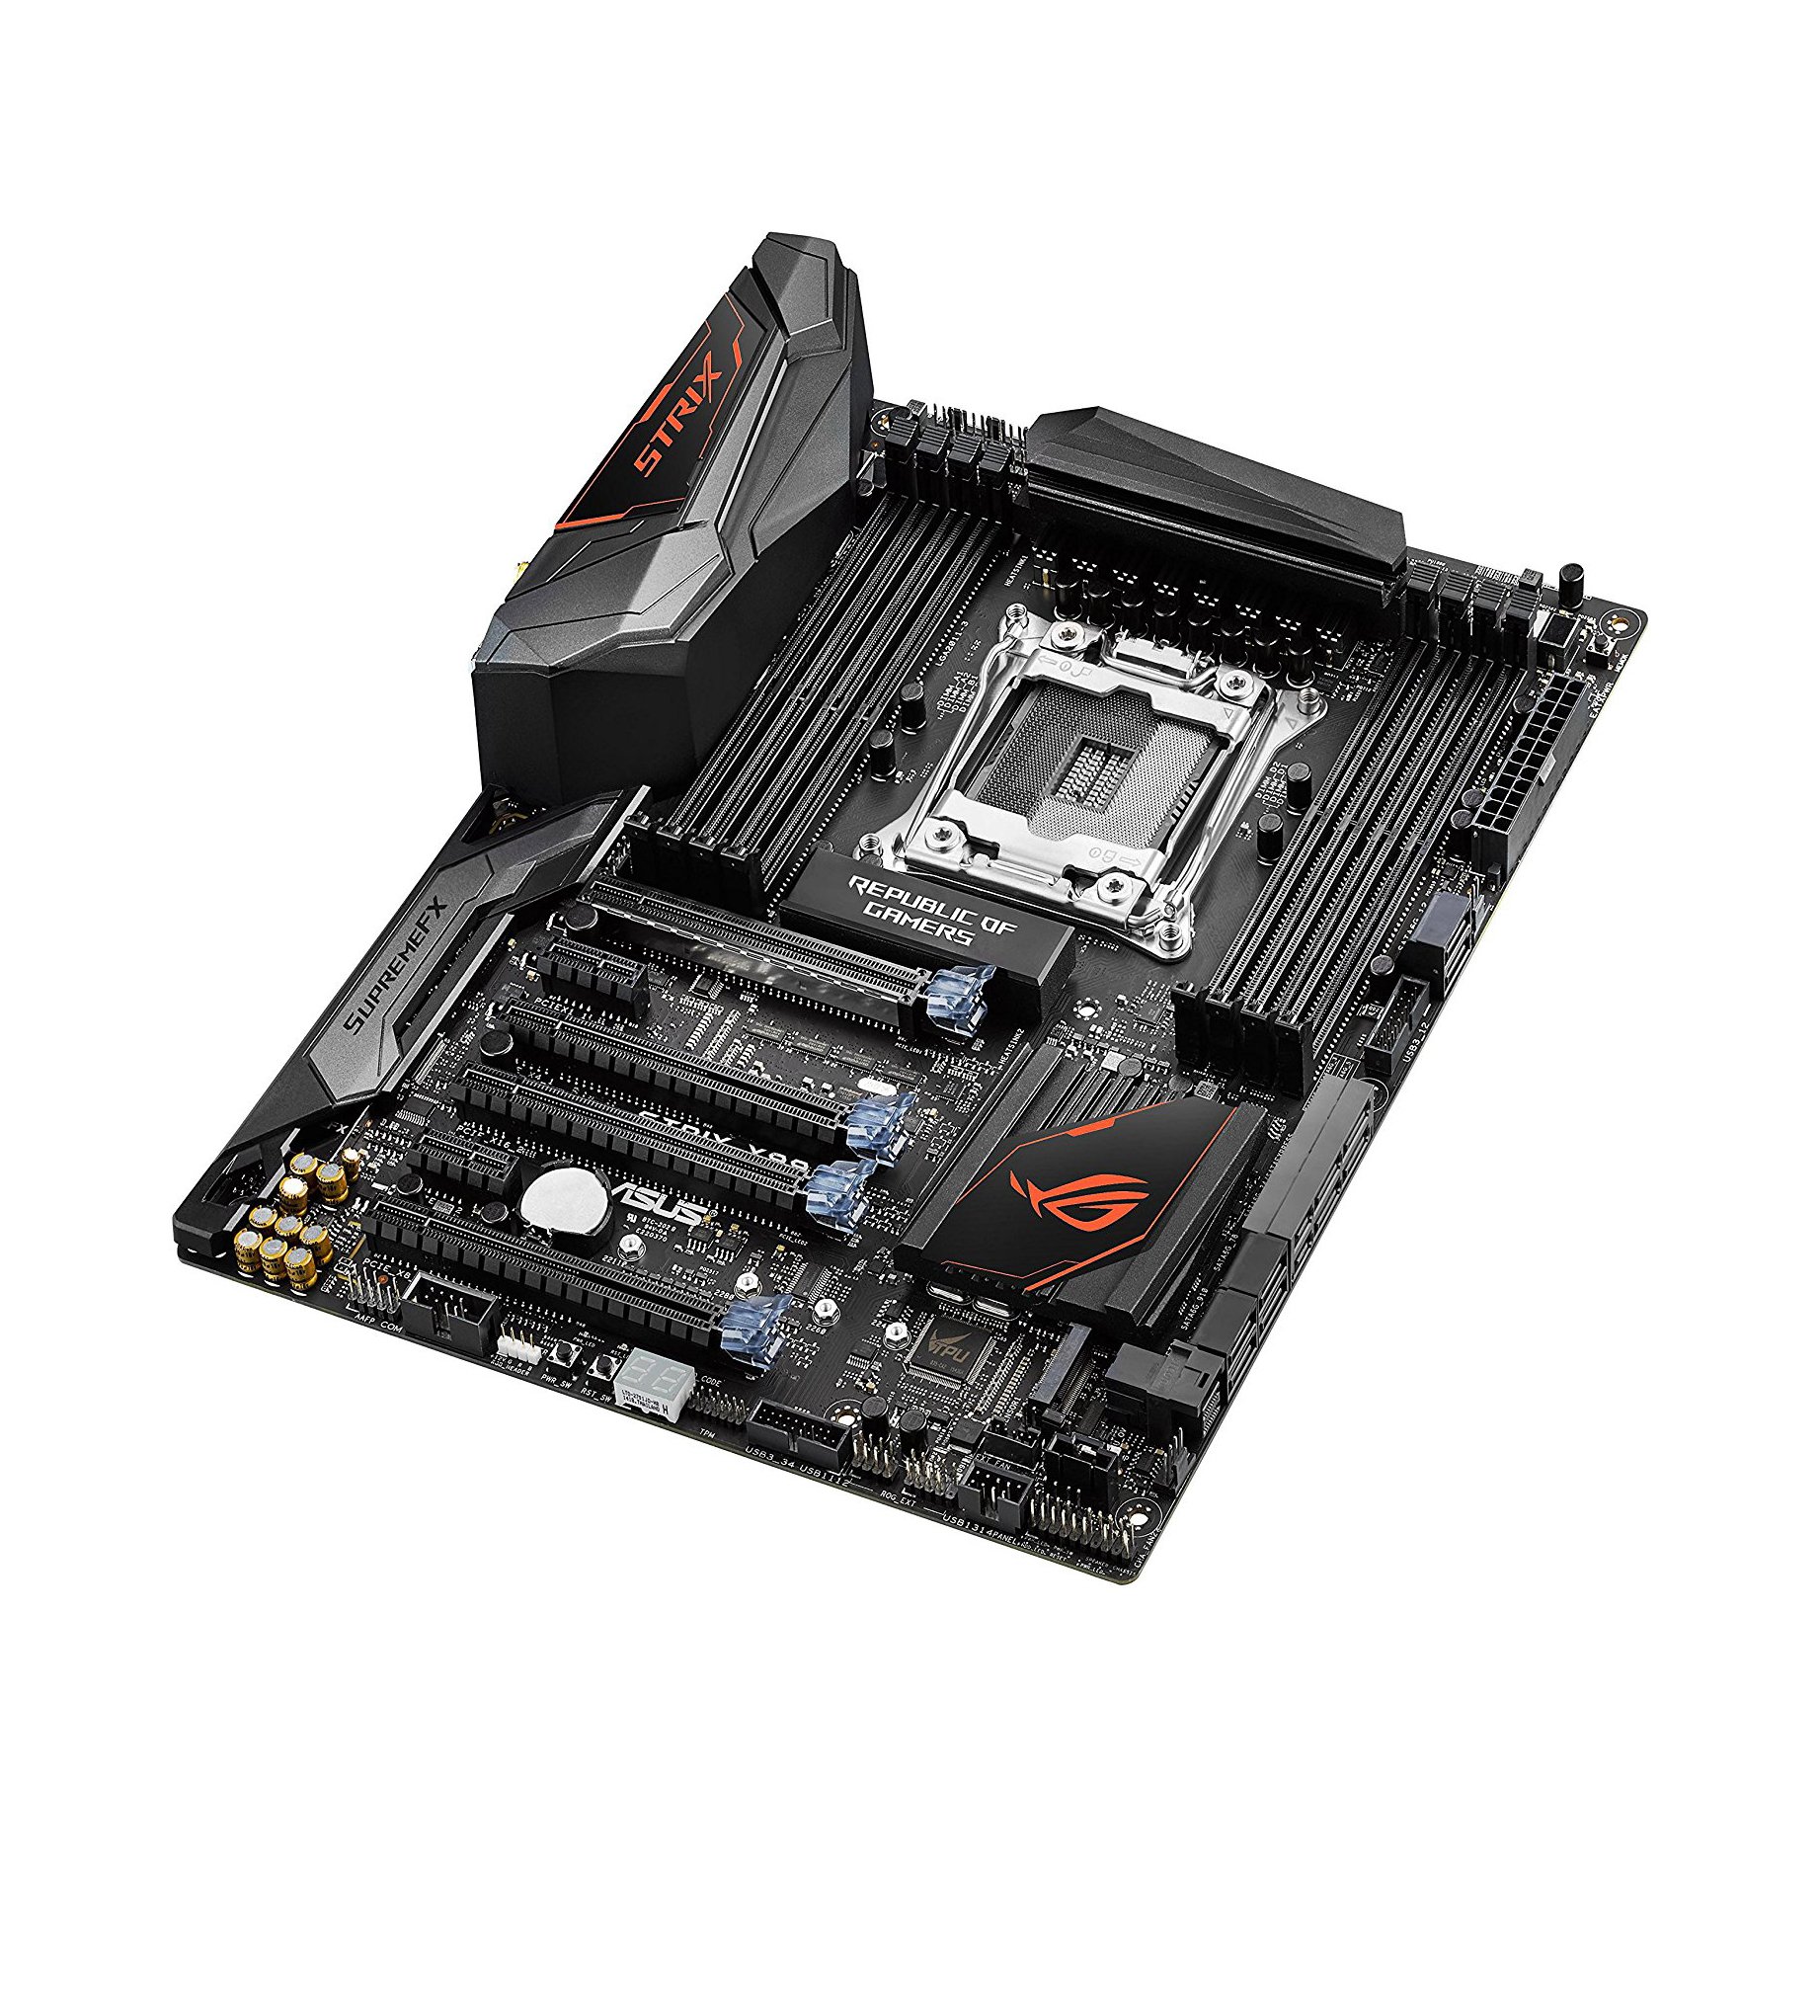 Scheda MadreAsus - Strix X99 Gaming, Socket 2011-v3